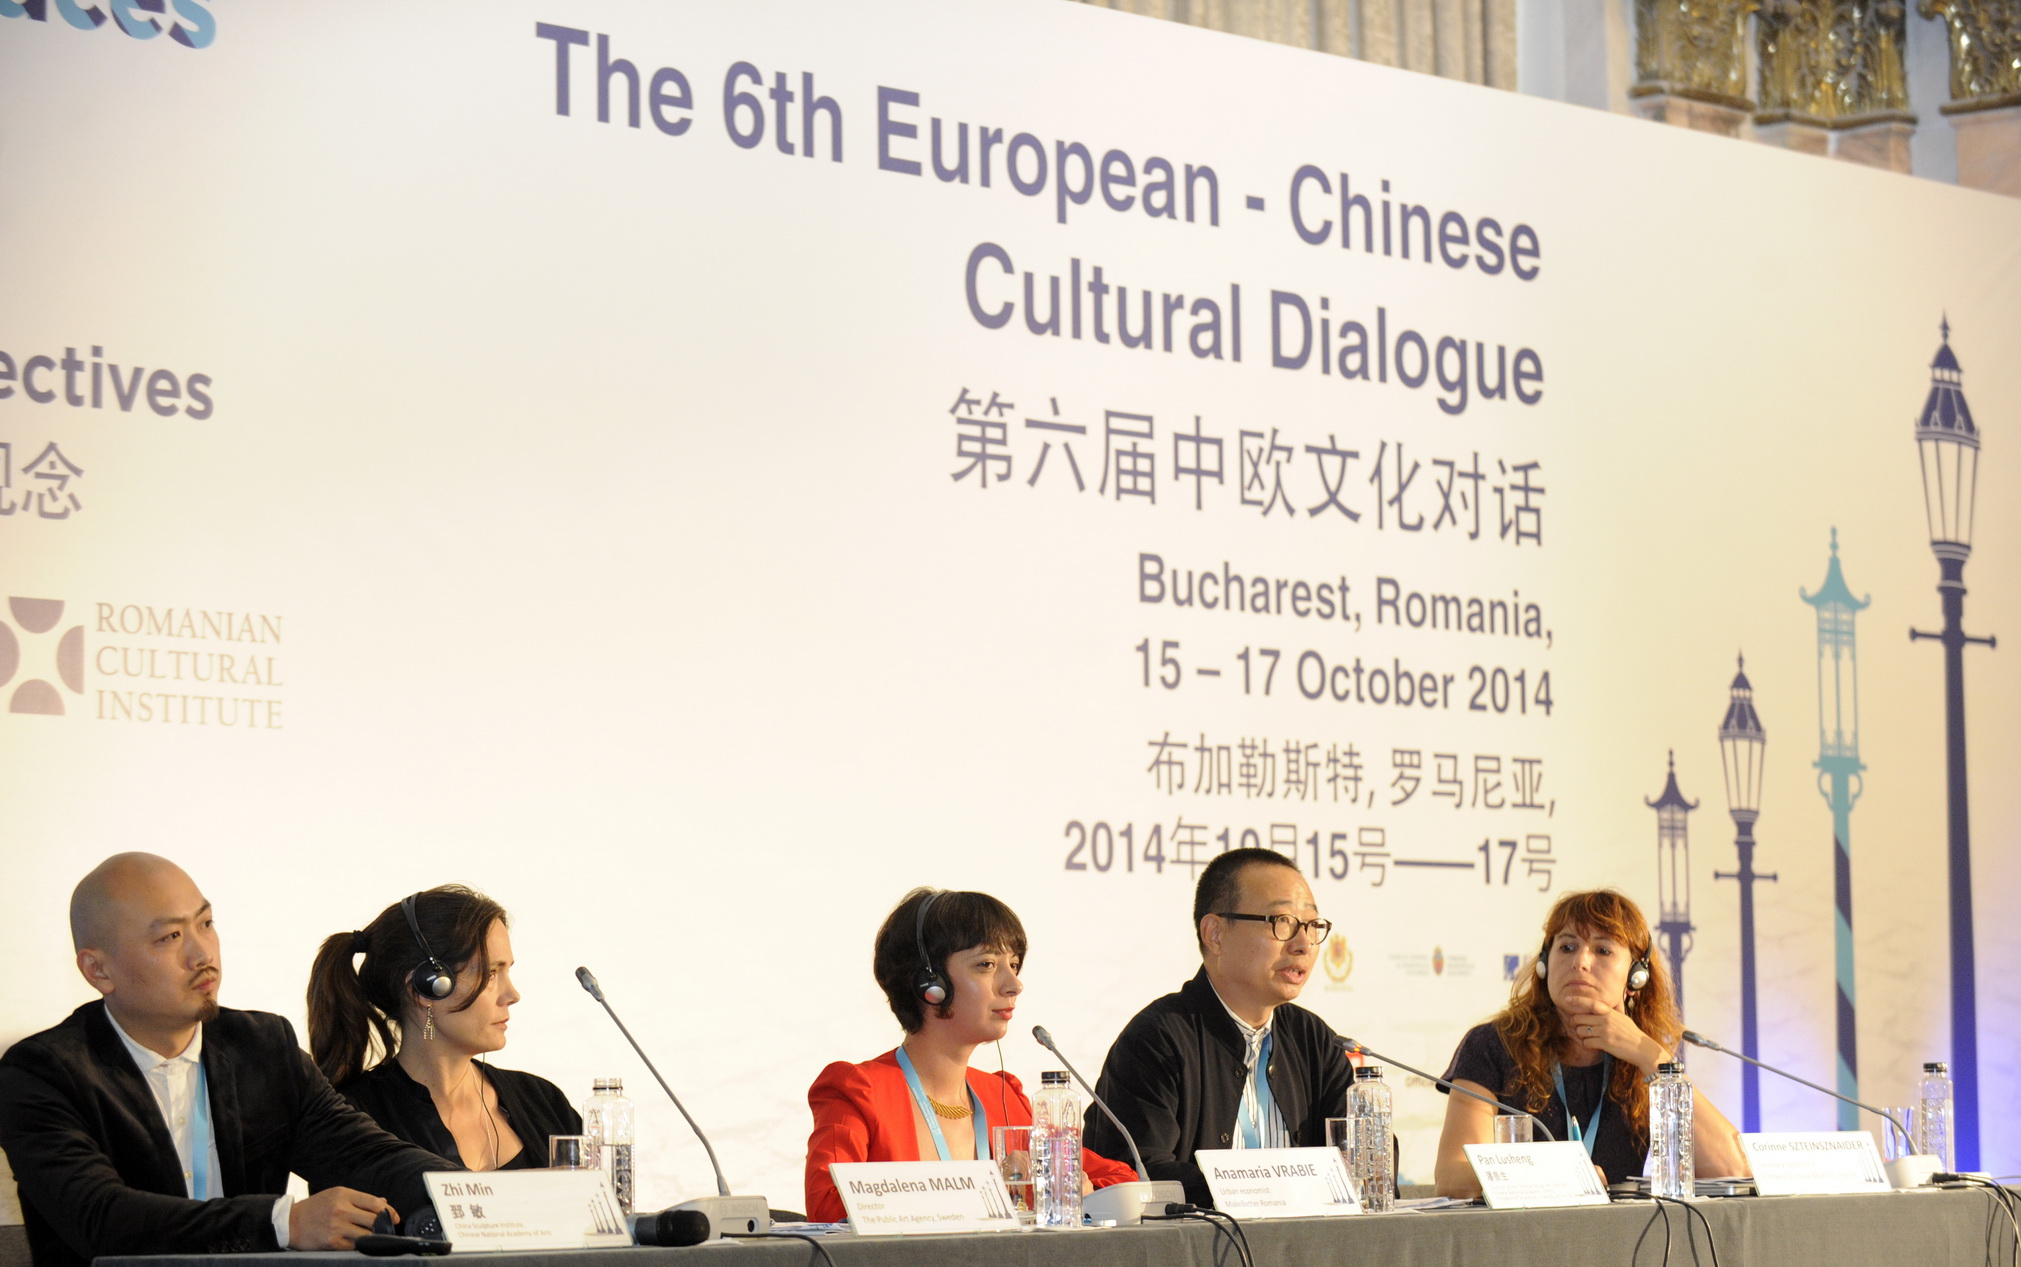 euchinadialogue